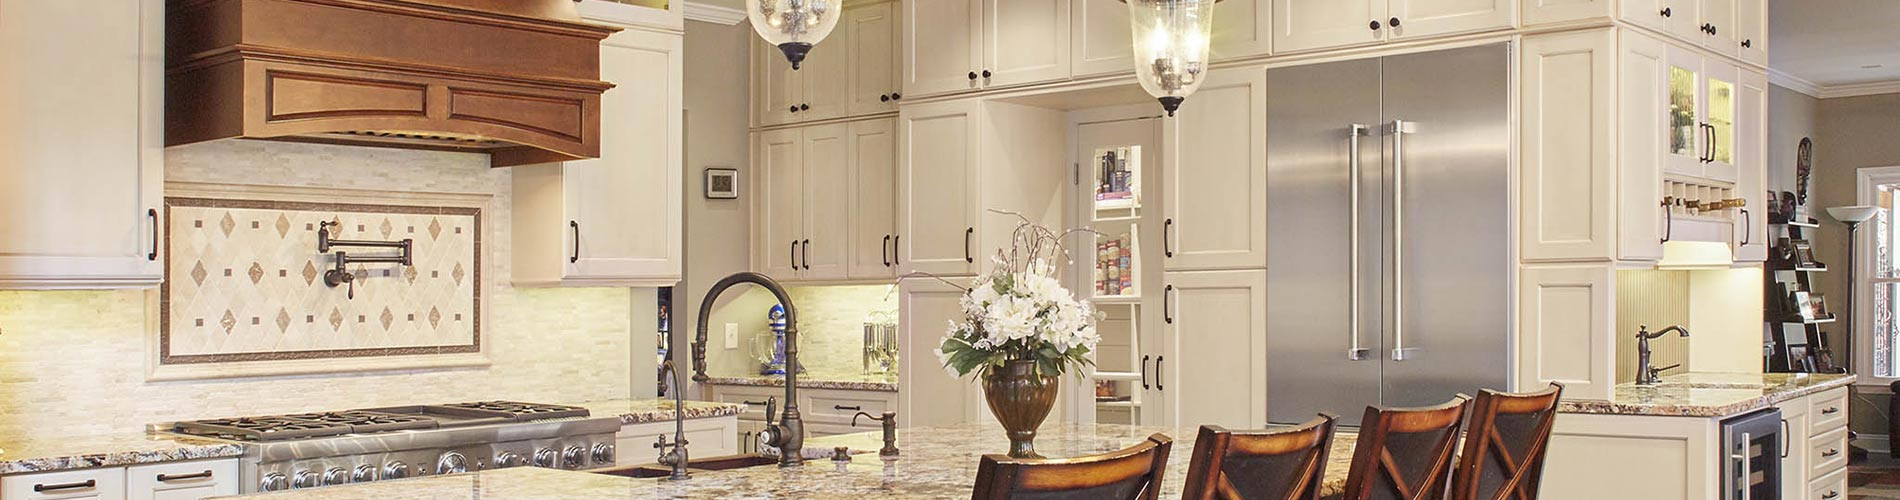 Kitchen & Bath Cabinetry